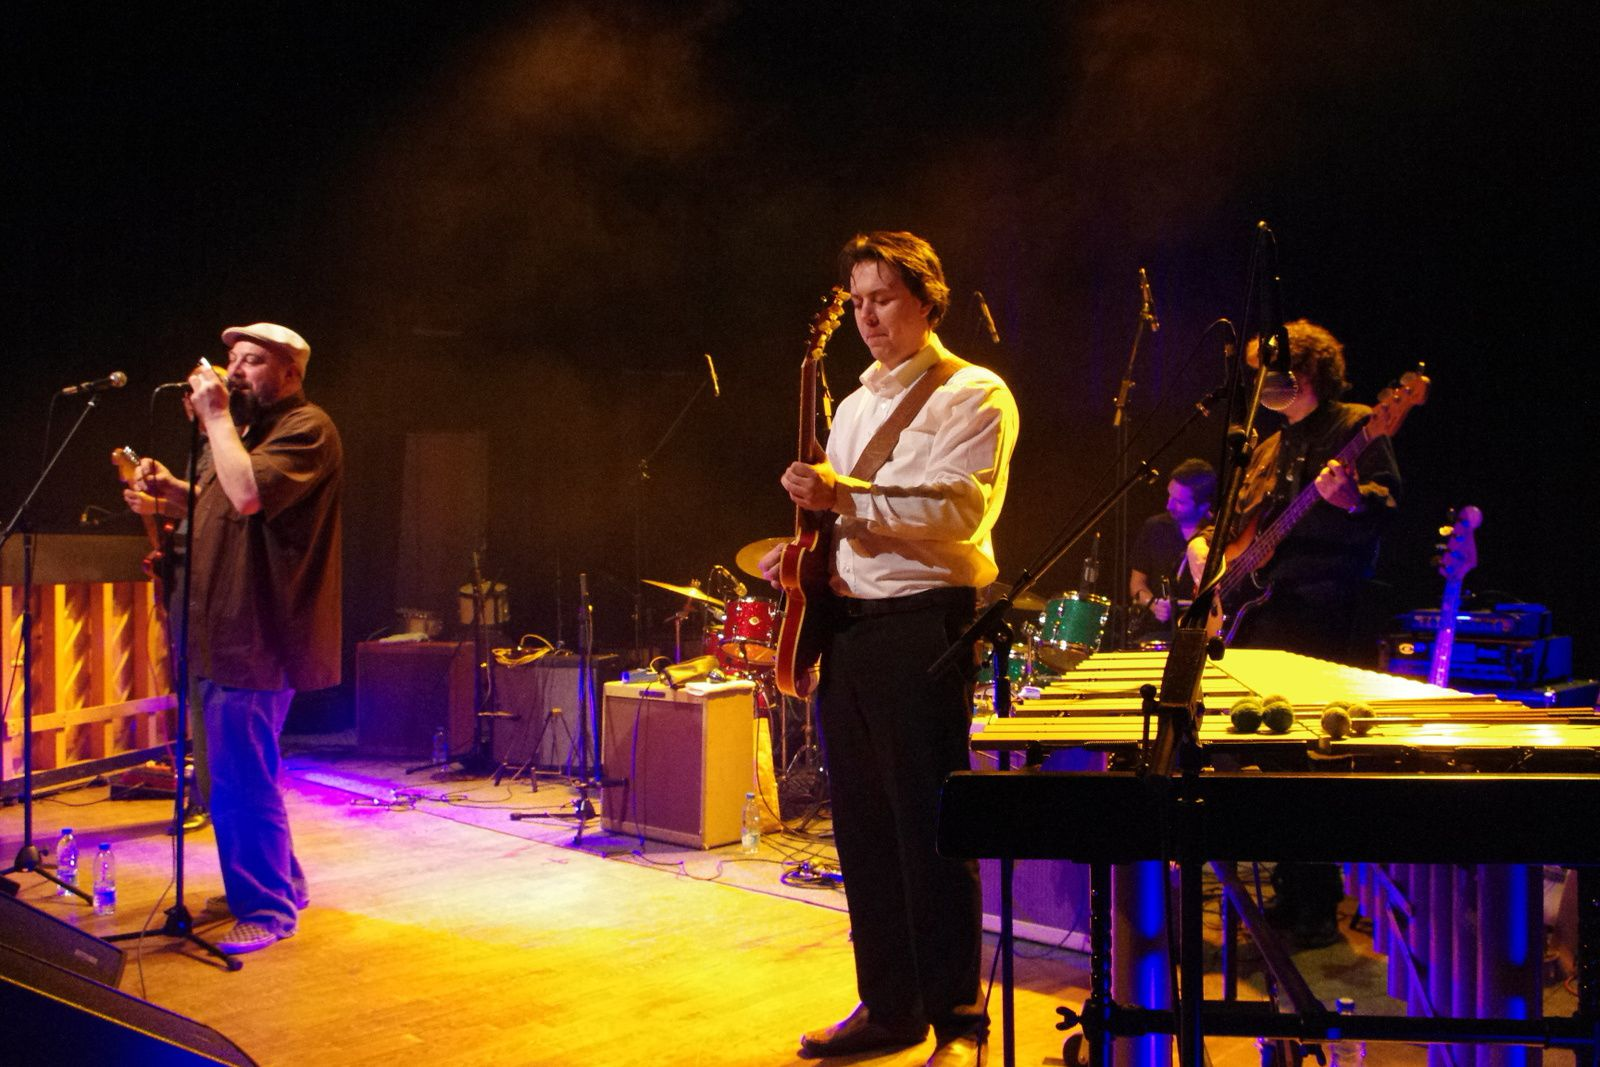 Les 50 ans de batterie de Willie Maze - 31 janvier 2014 - 7 nights to blues, St André lez Lille (59)